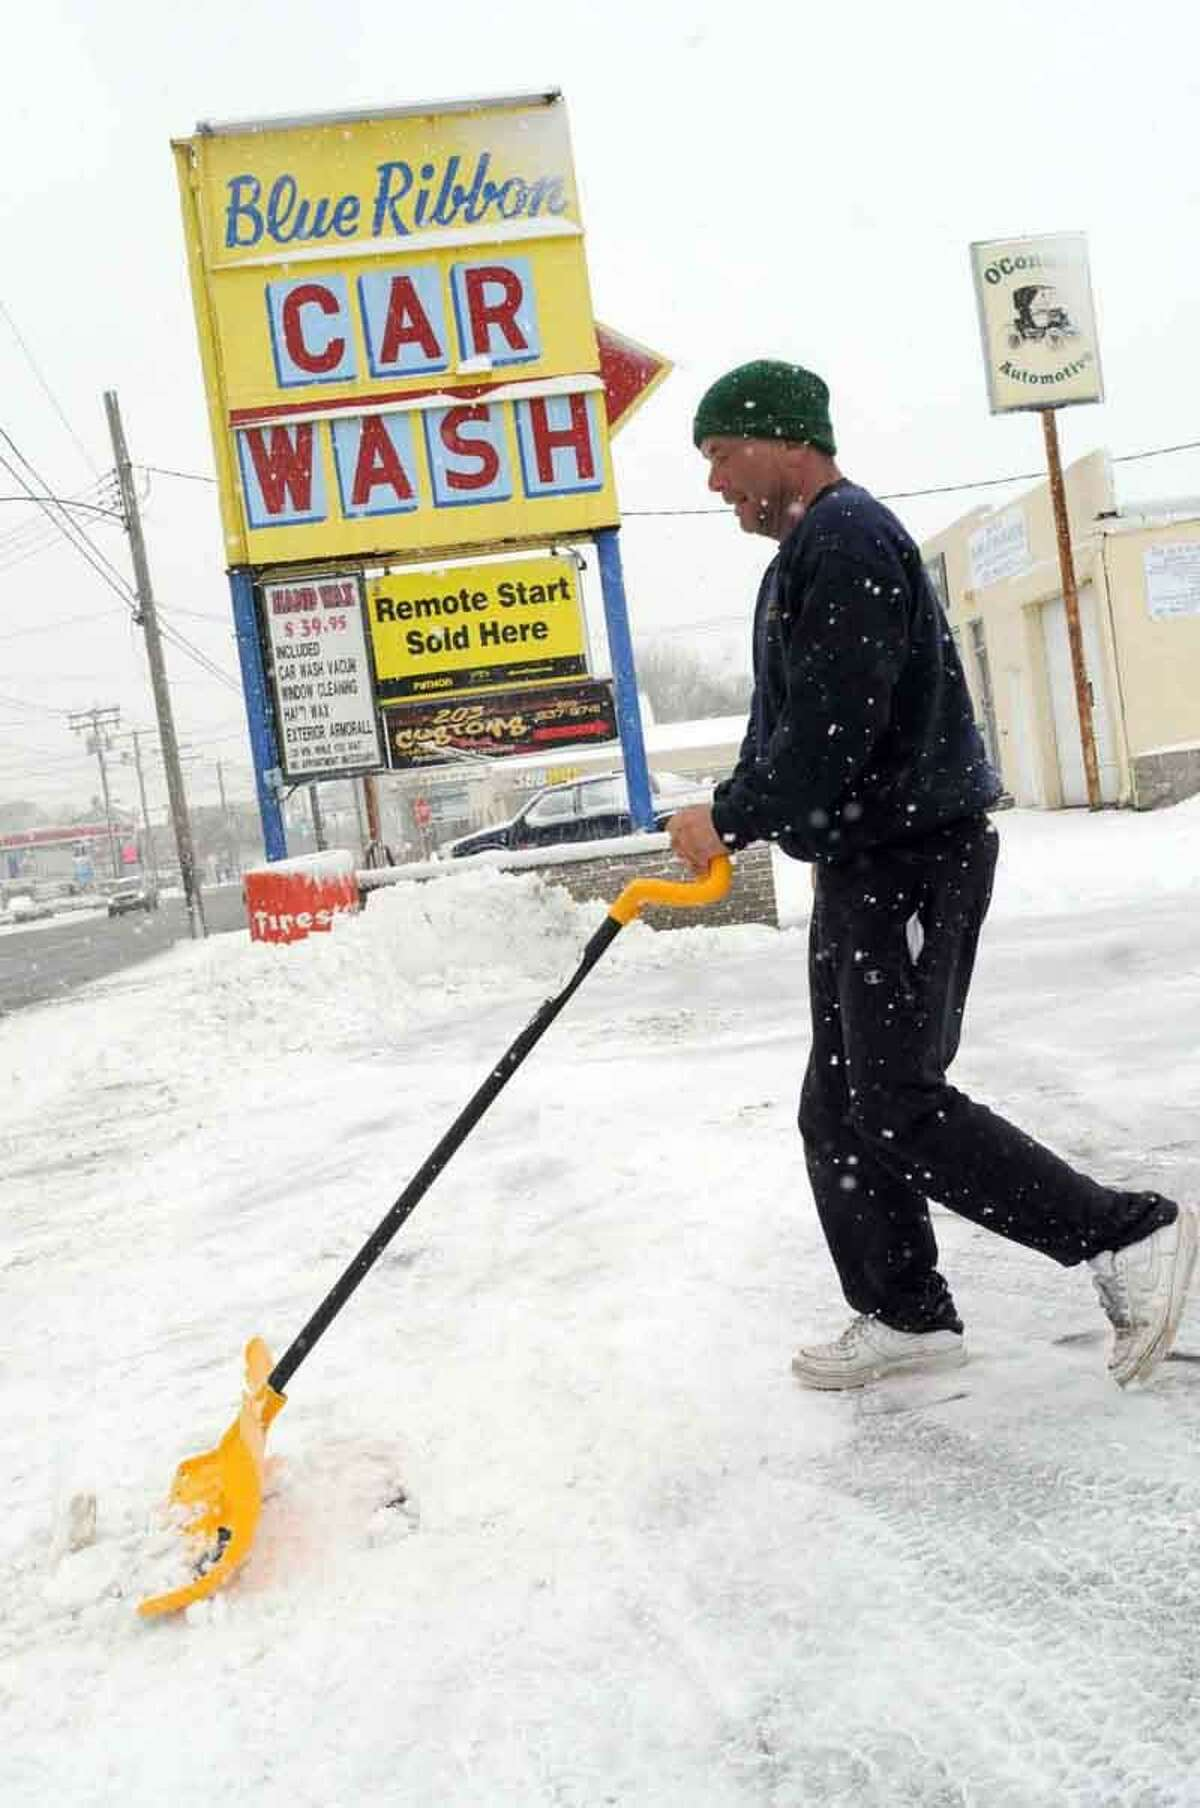 Terry Stone, a Blue Ribbon Car Wash employee, shovels snow from the front of the Elm Street car wash Friday, February 8, 2013 in West Haven. Stone says that once the snow stops the car wash business will be booming. Connecticut.Blizzard warnings have been issued for all of Connecticut, according to the National Weather Service. Connecticut residents should brace for a possible blizzard Friday and into Saturday that could dump up to two feet of snow, along with high winds and the potential for coastal flooding. Friday, February 8, 2013. Photo by Peter Hvizdak / New Haven Register